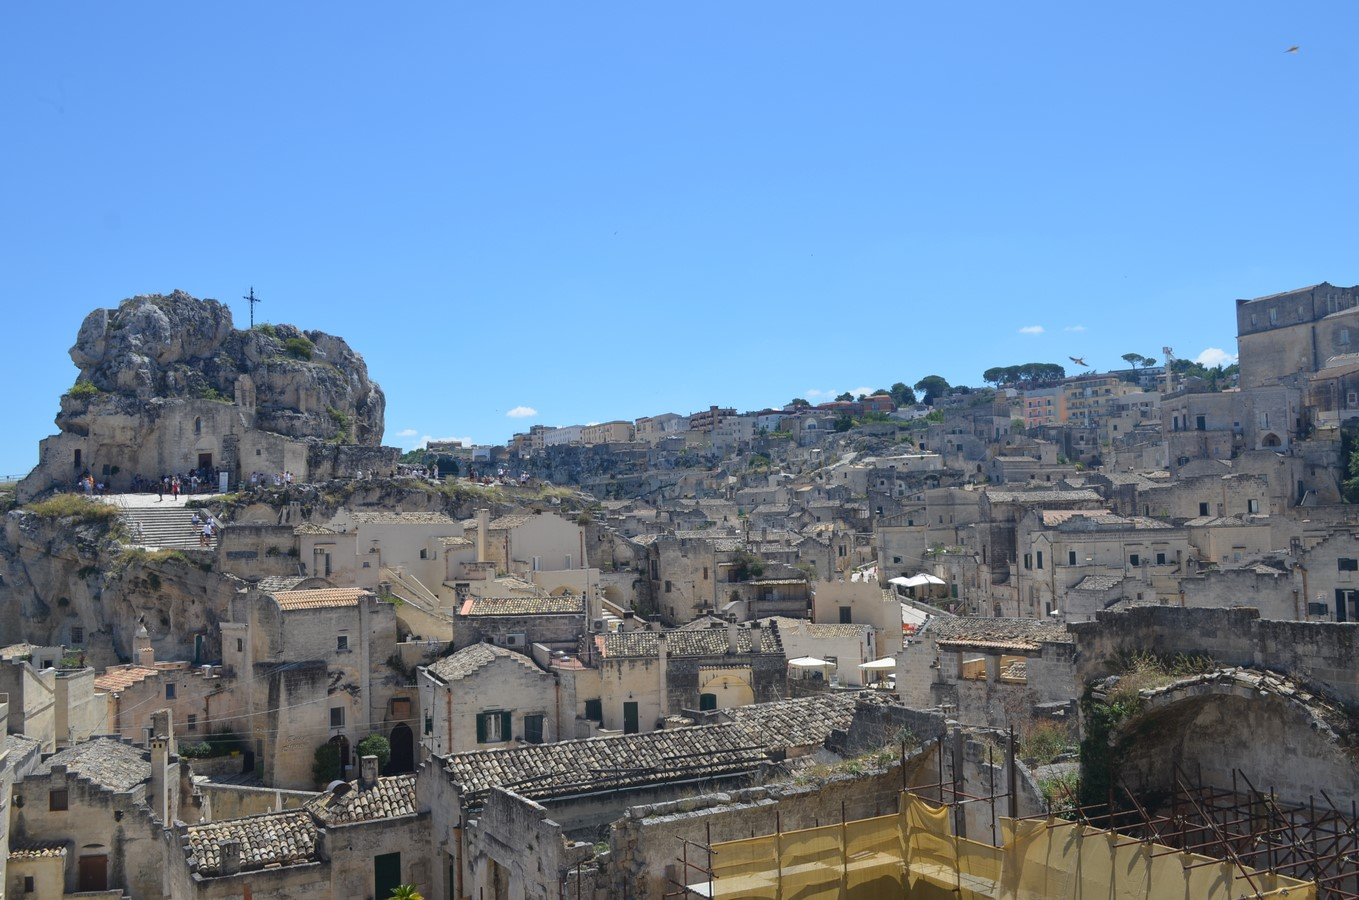 Architecture of Matera settlement in Italy - Sheet3